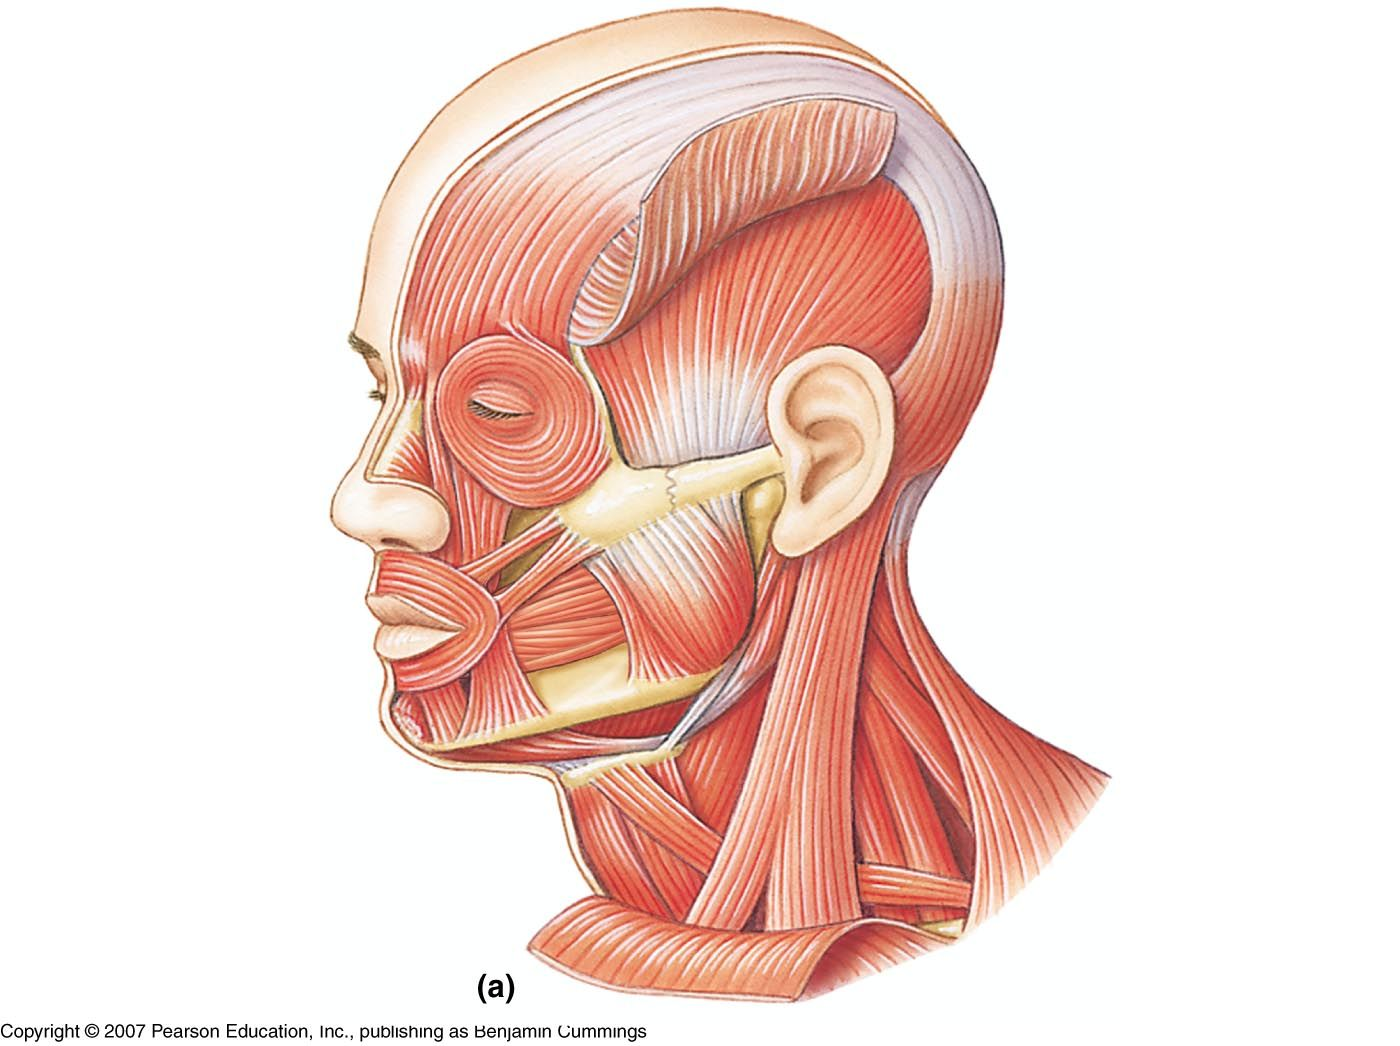 Unlabeled Muscles Of The Head And Neck